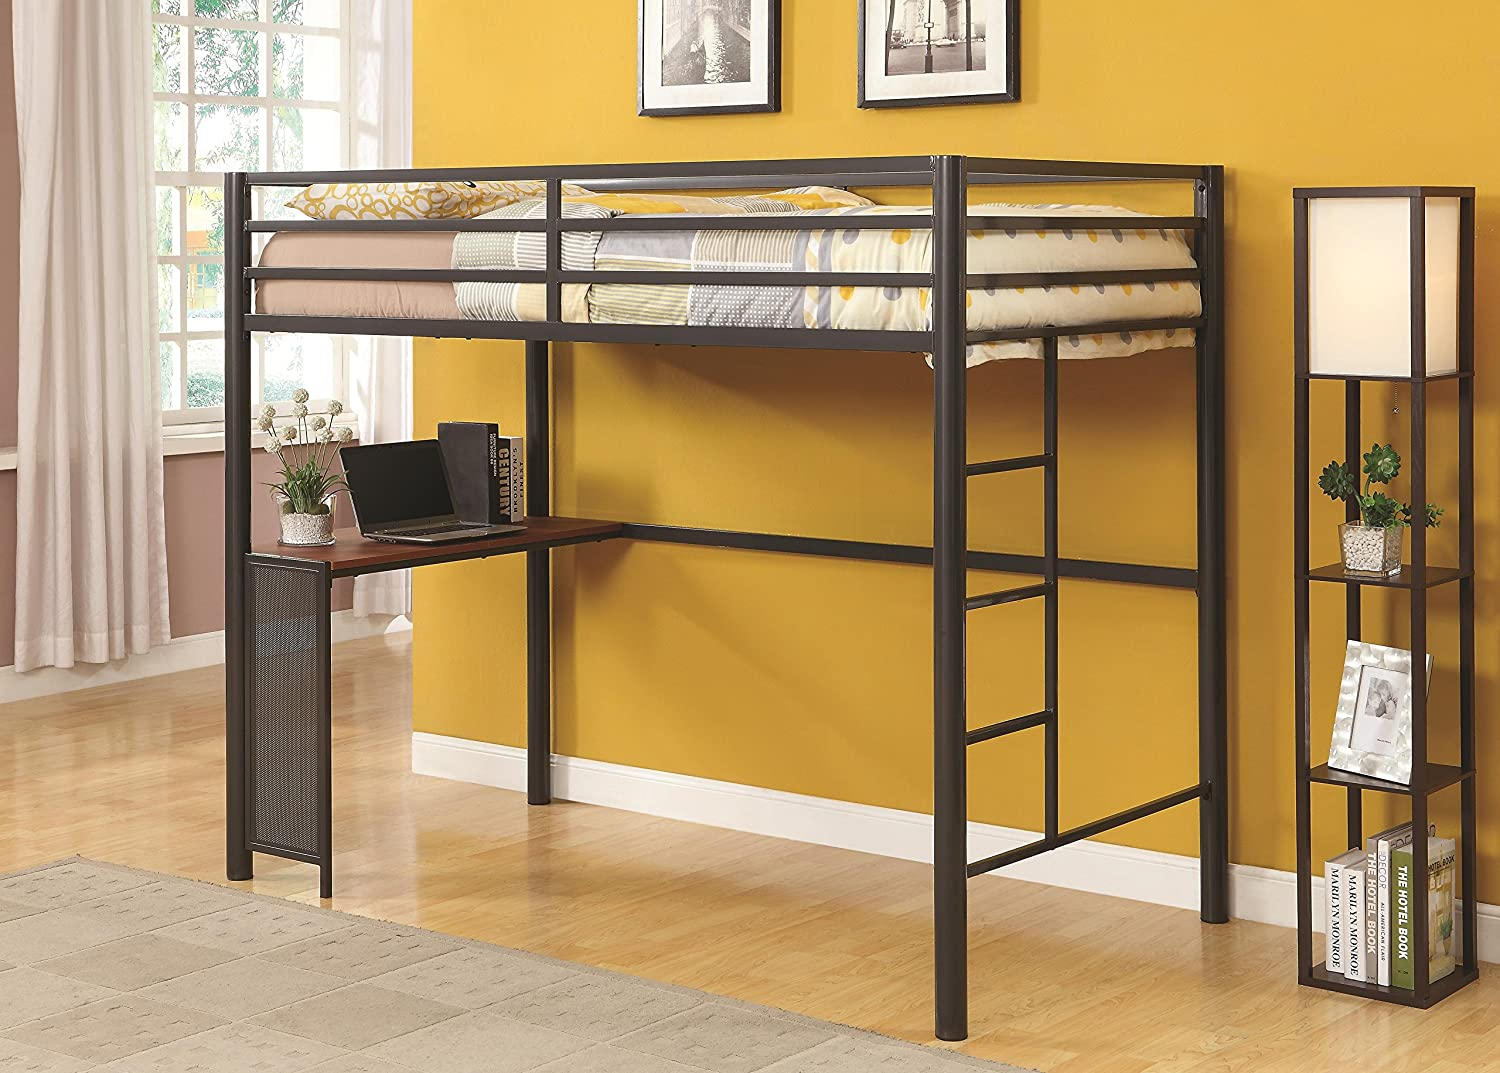 Coaster Home Furnishings Bunk Bed - Gunmetal